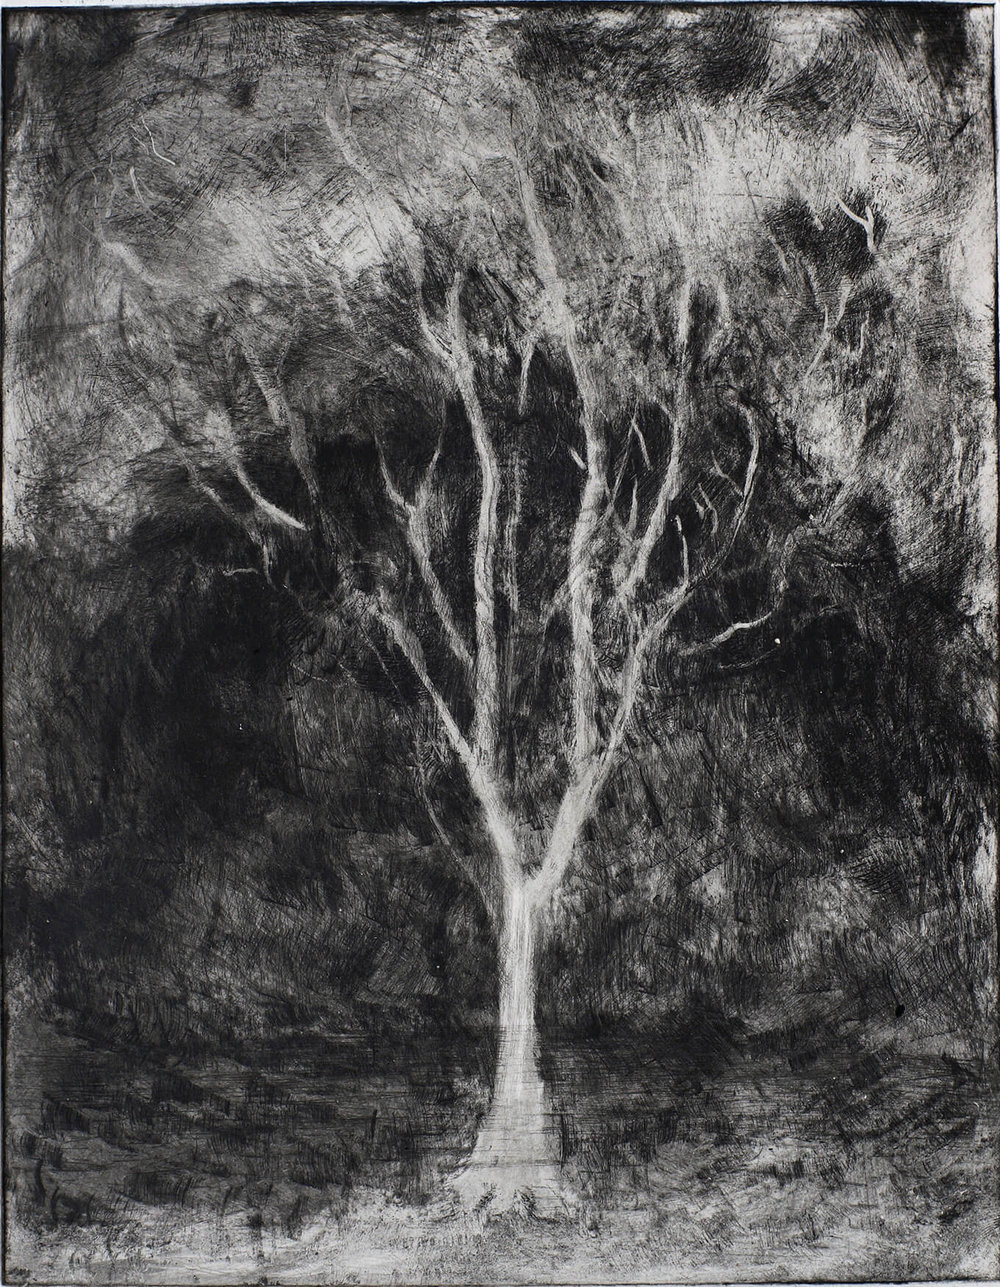 The Tree of Light , Loch and Mountain at Night ( Monoprint ) 25.8 x 20.2 cm